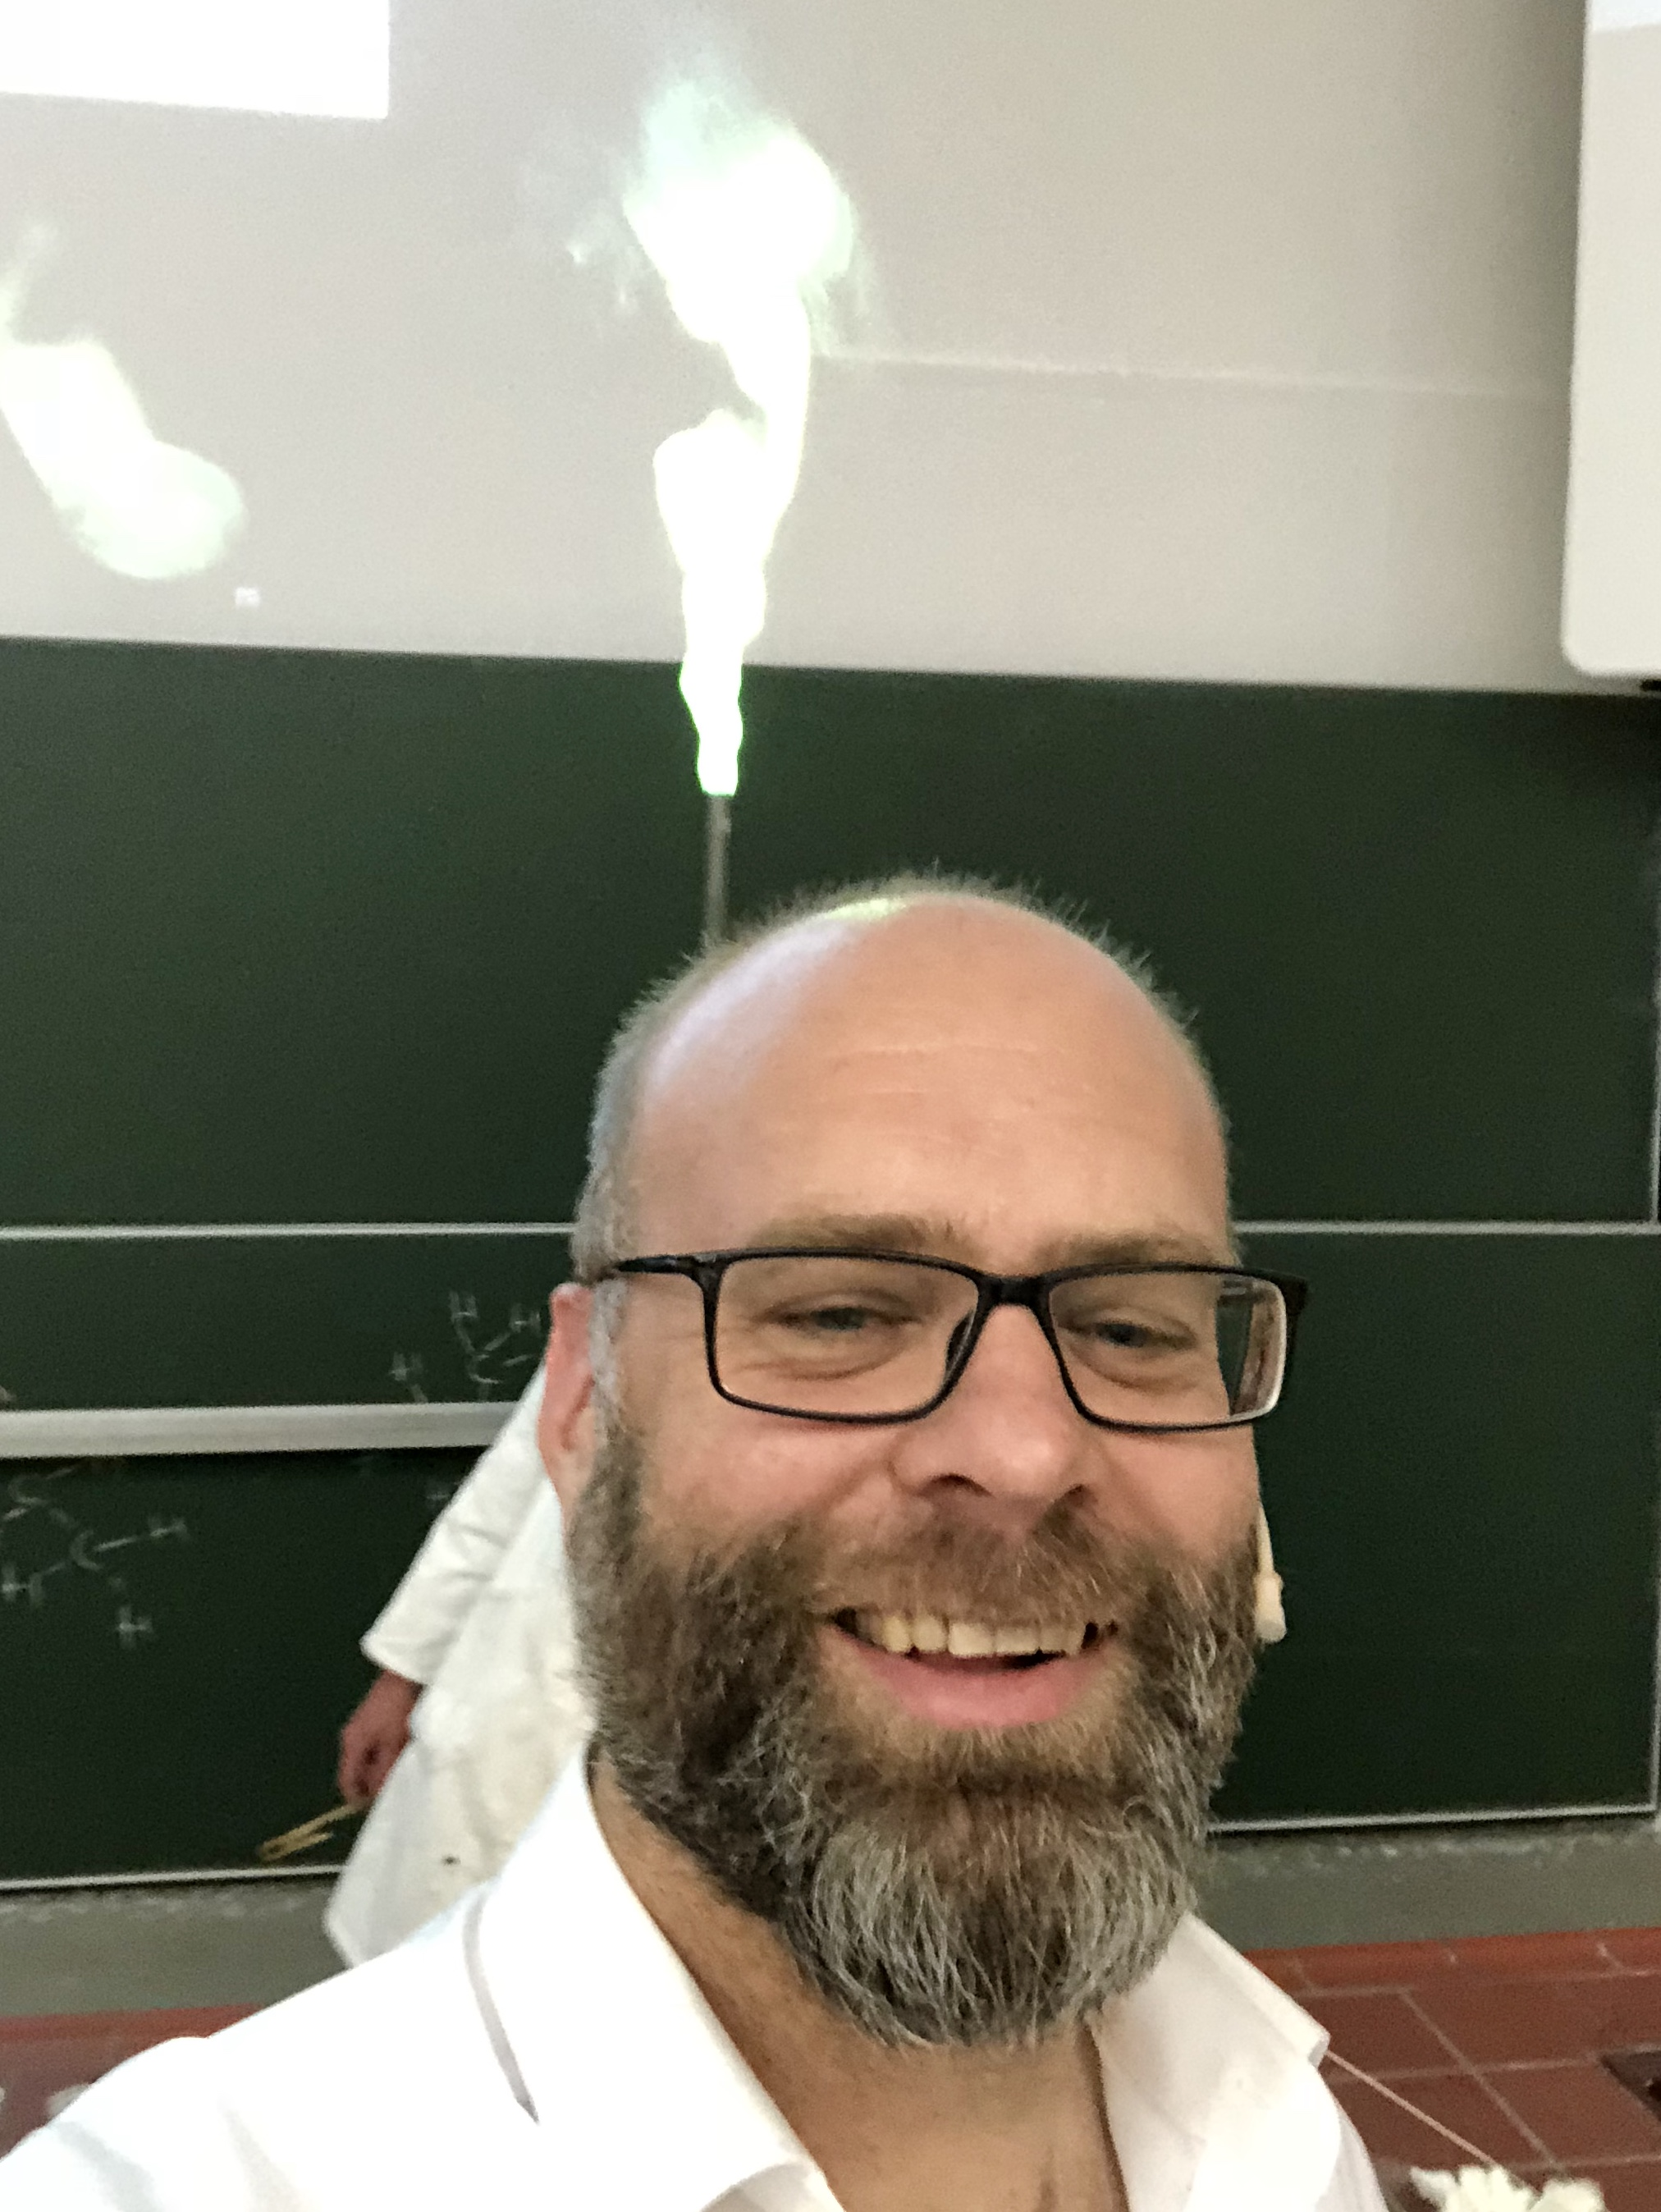 Lutz Ackermann studied Chemistry at the University Kiel (Germany), and  performed his PhD with Prof. Alois Fürstner at the Max-PlankInstitut für ... b335926ff9e